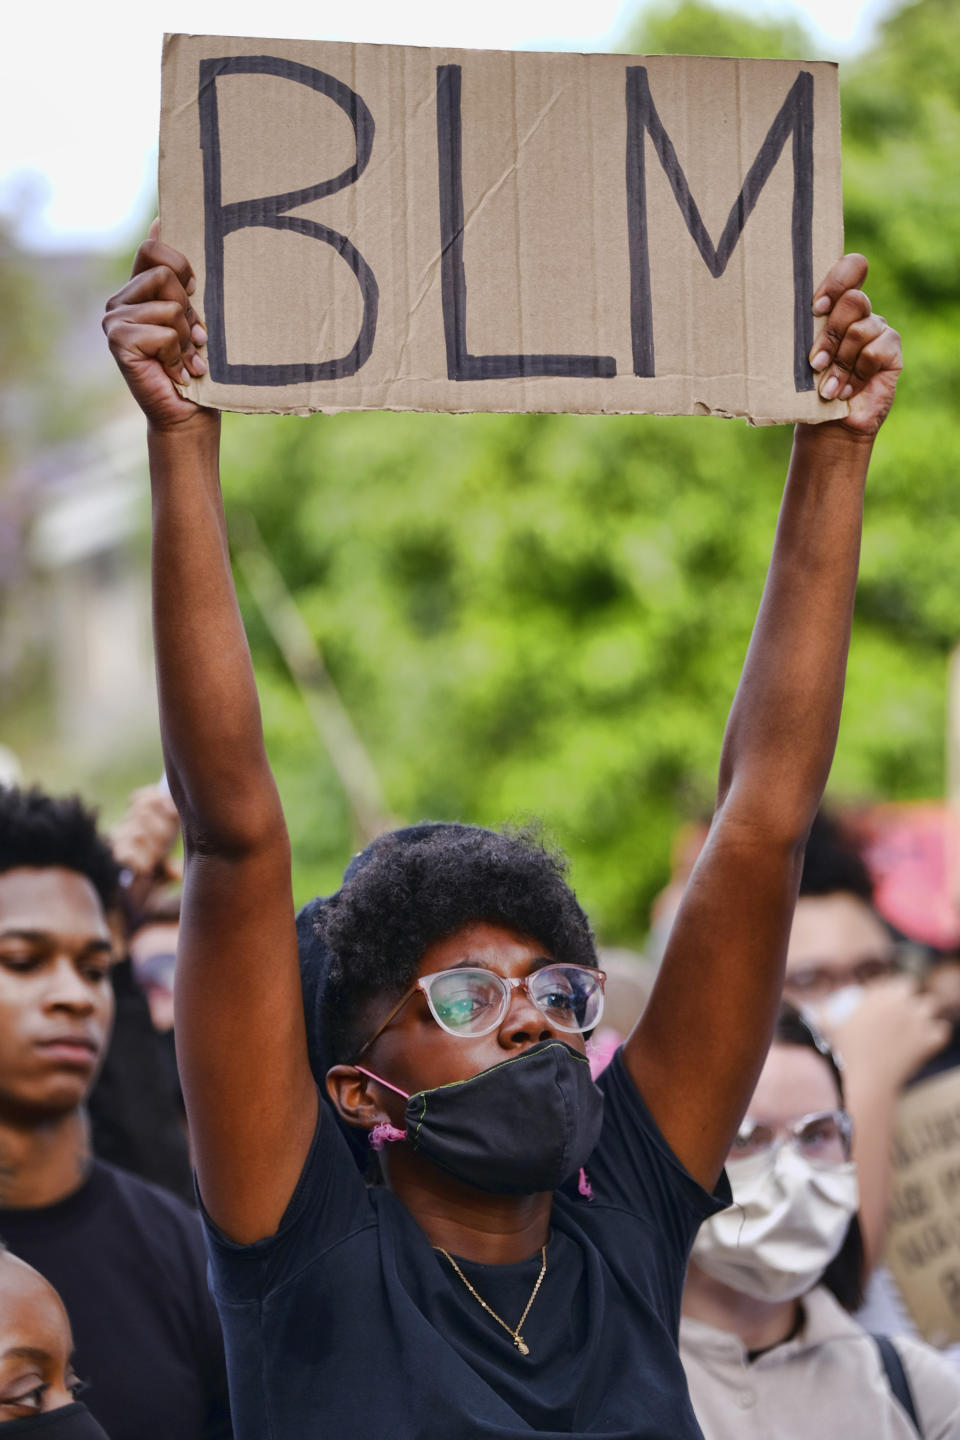 Pictured is a Black Lives Matter protester holding up a sign with the letters BLM.